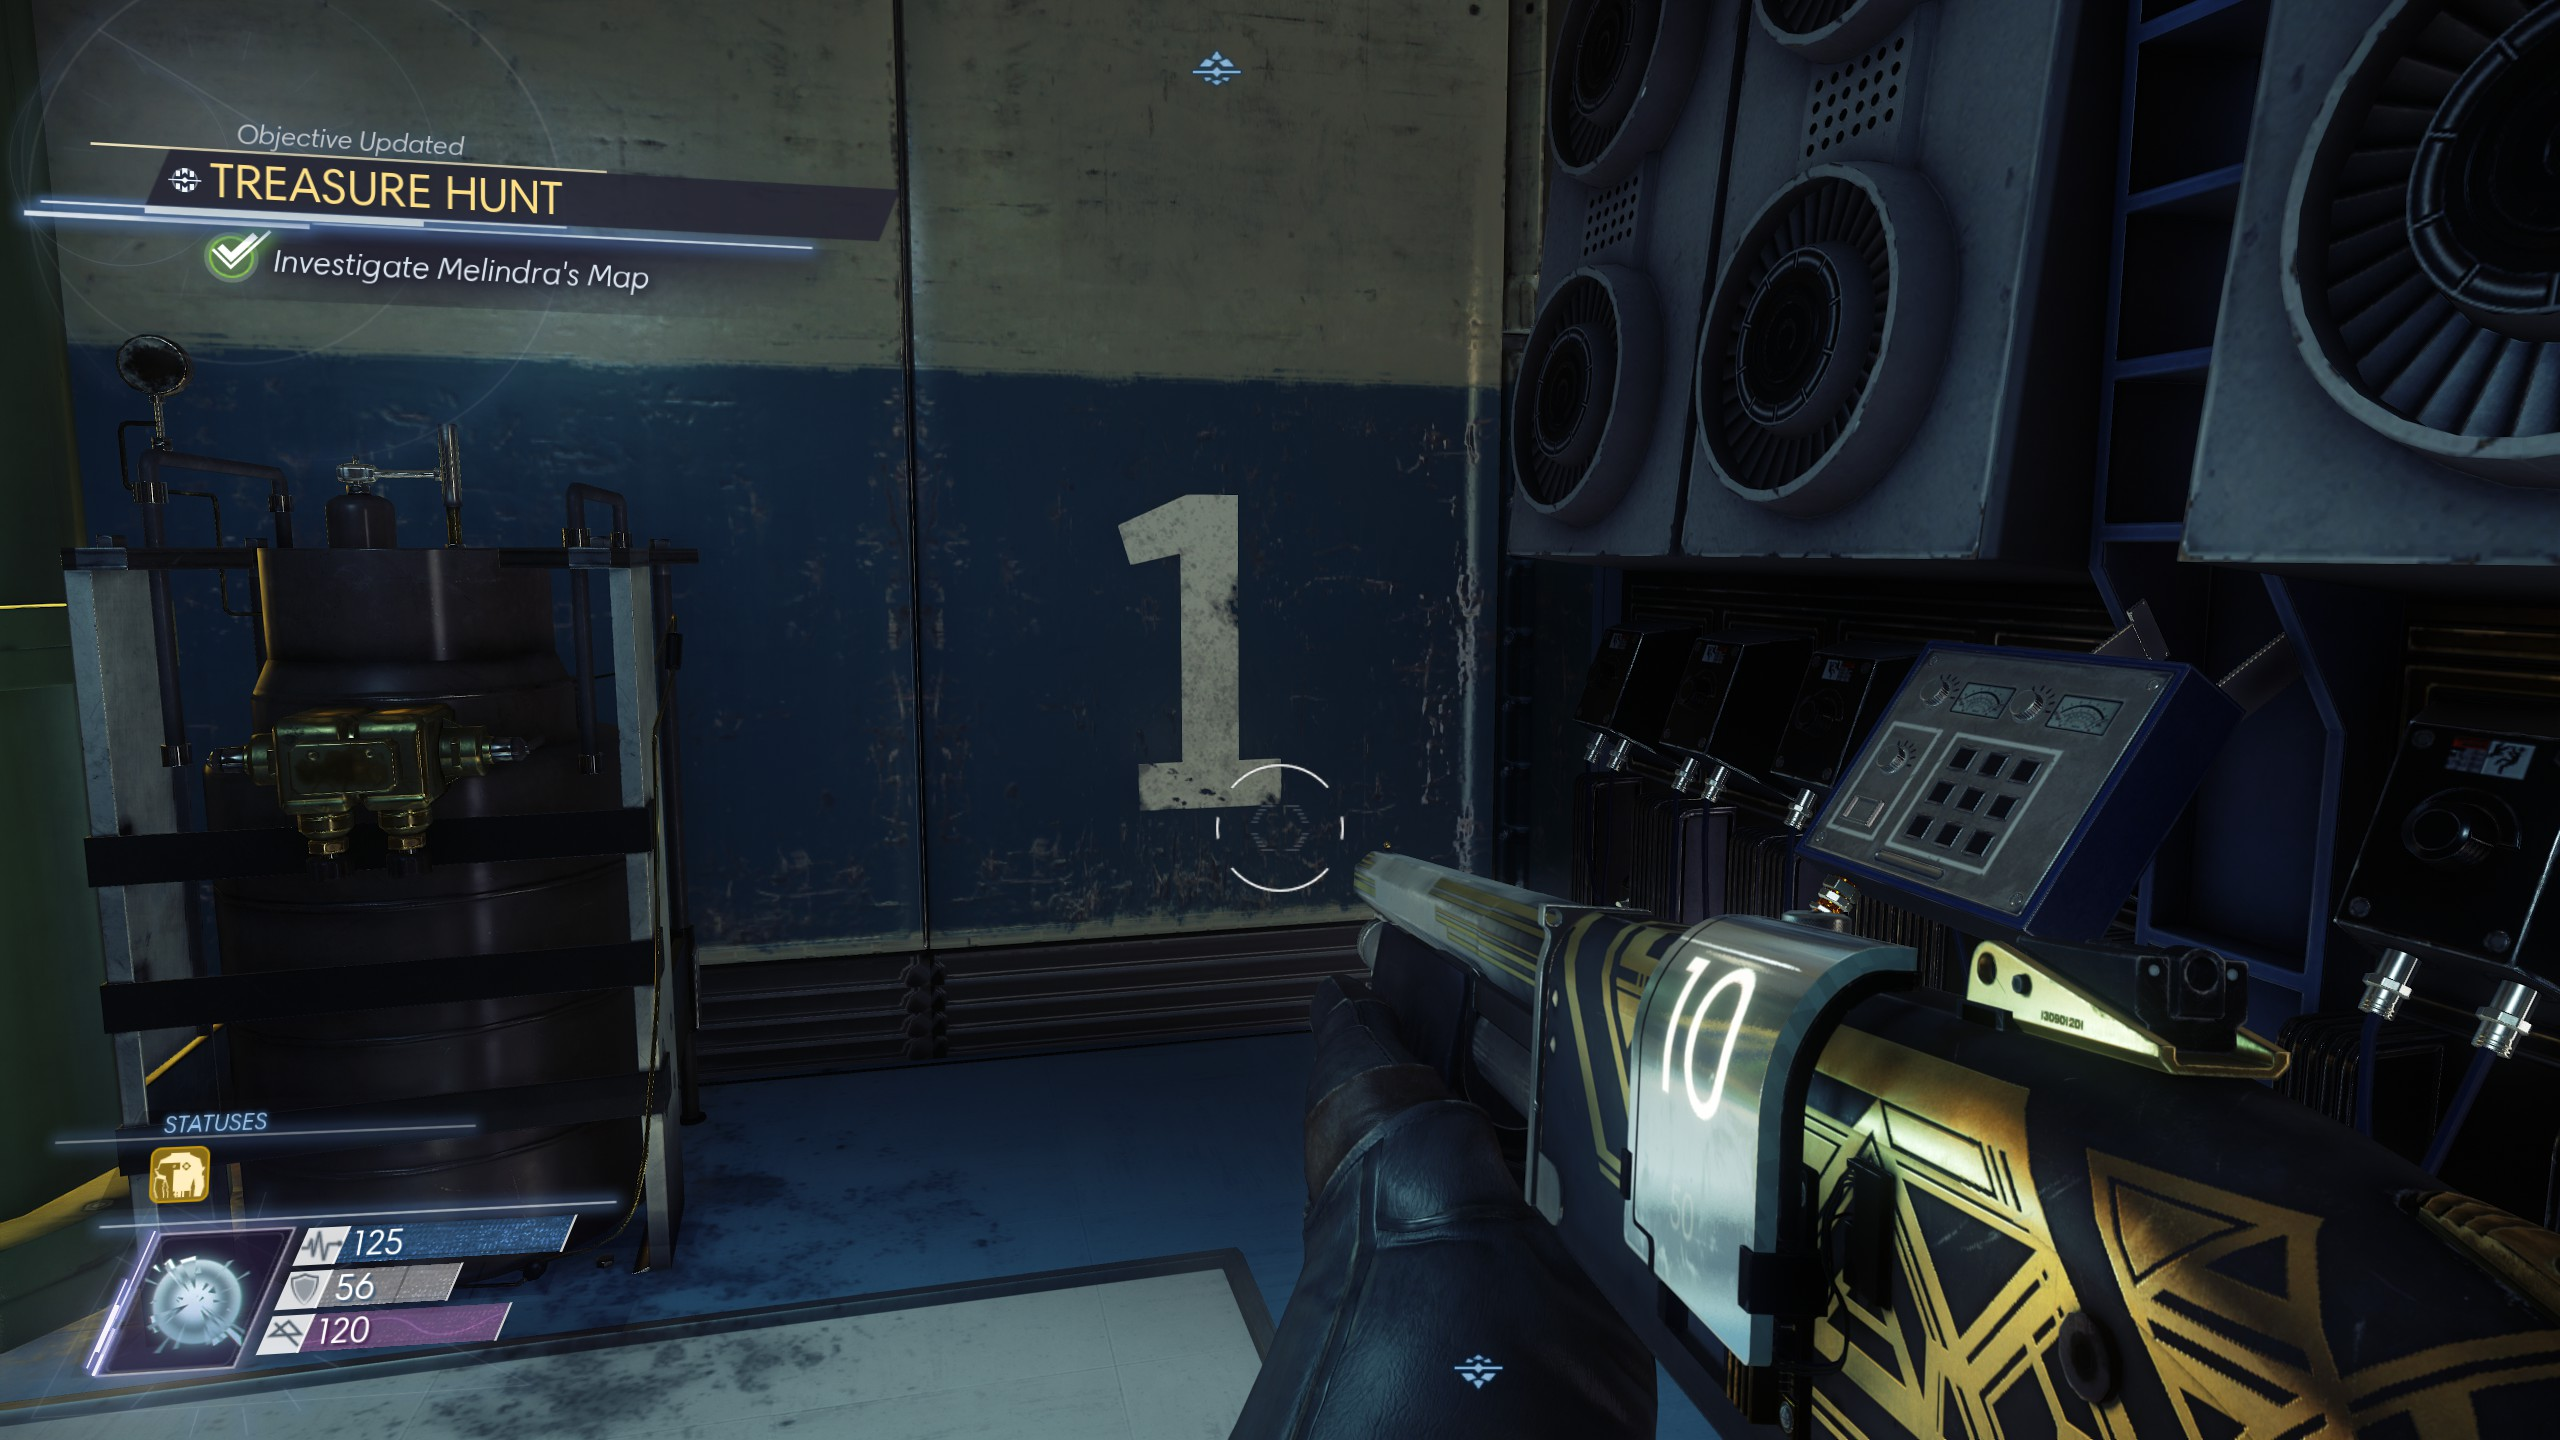 When you find the number on the wall, you'll complete the investigate Melindra's map objective.